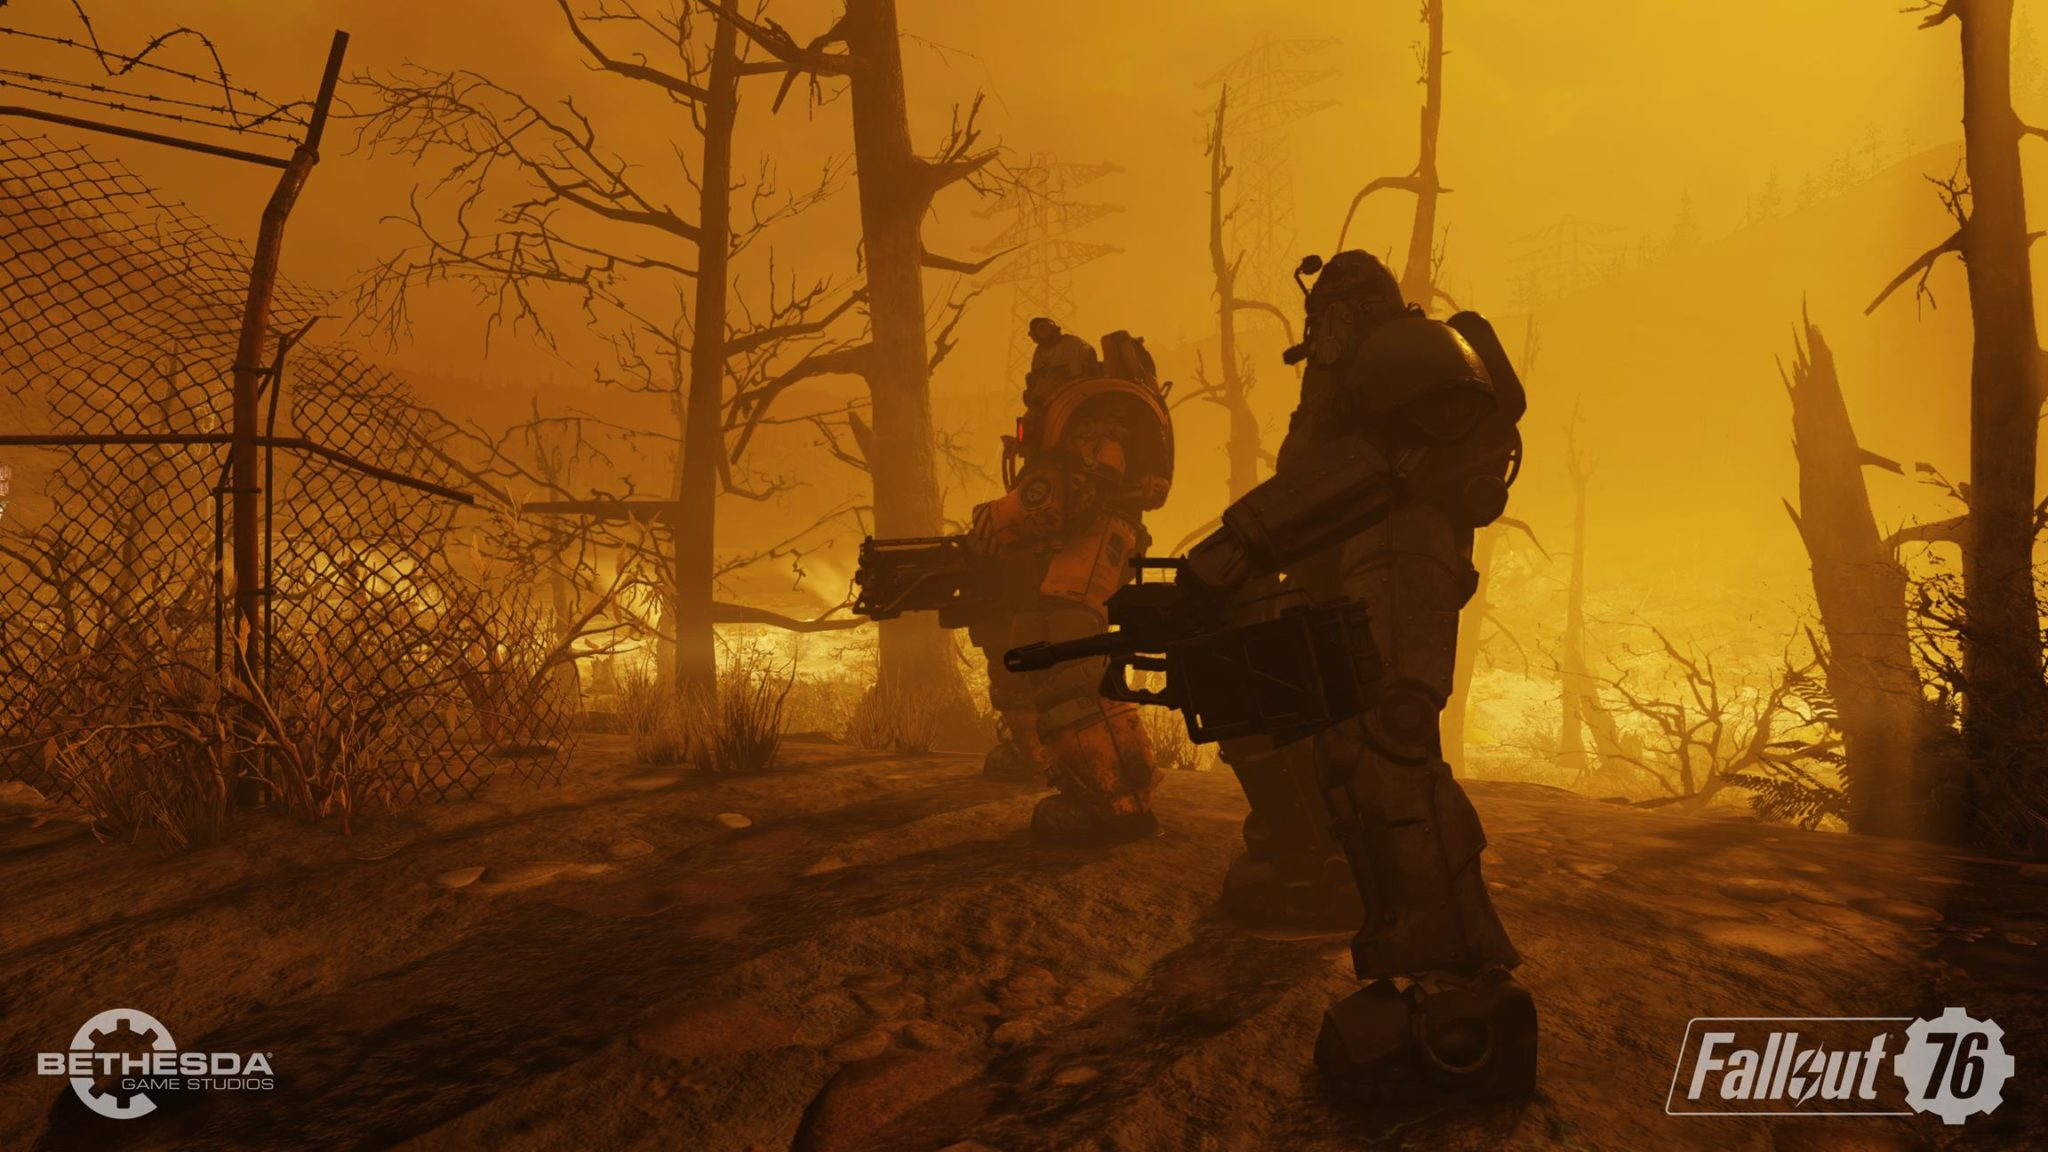 Fallout 76 Players Banned for Trying to Improve Graphics